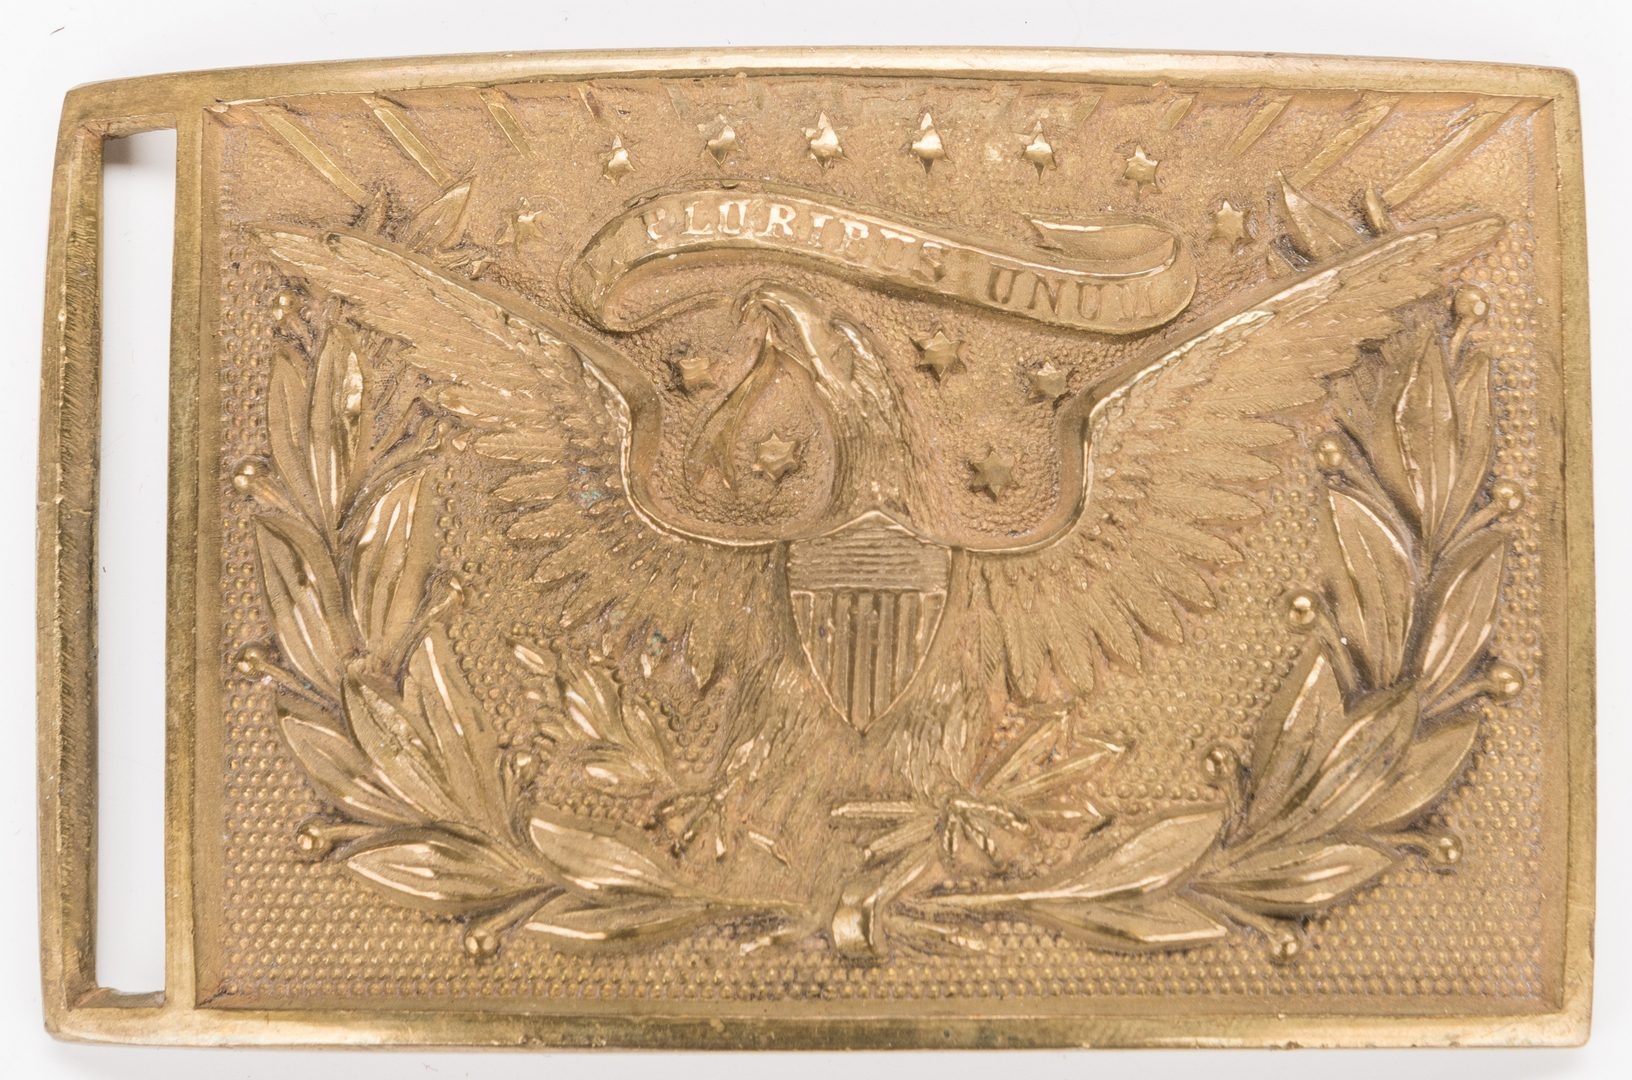 Lot 529: 3 Spanish-American and Indian War era items, inc. Canteen